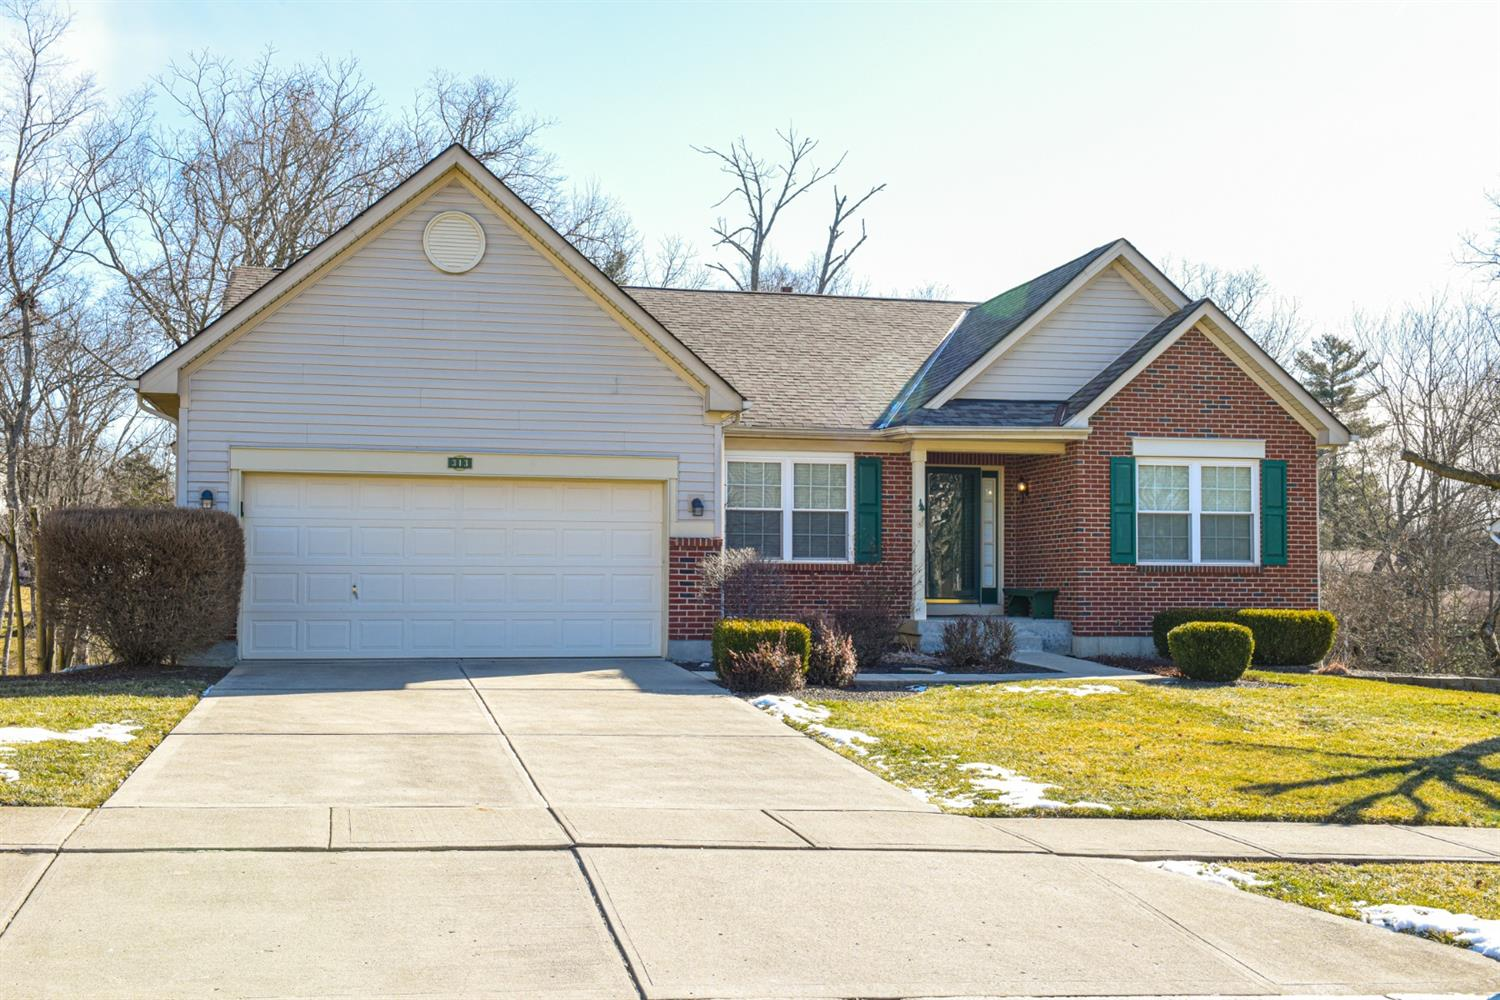 Photo 1 for 313 E Stoneridge Drive Milford, OH 45150